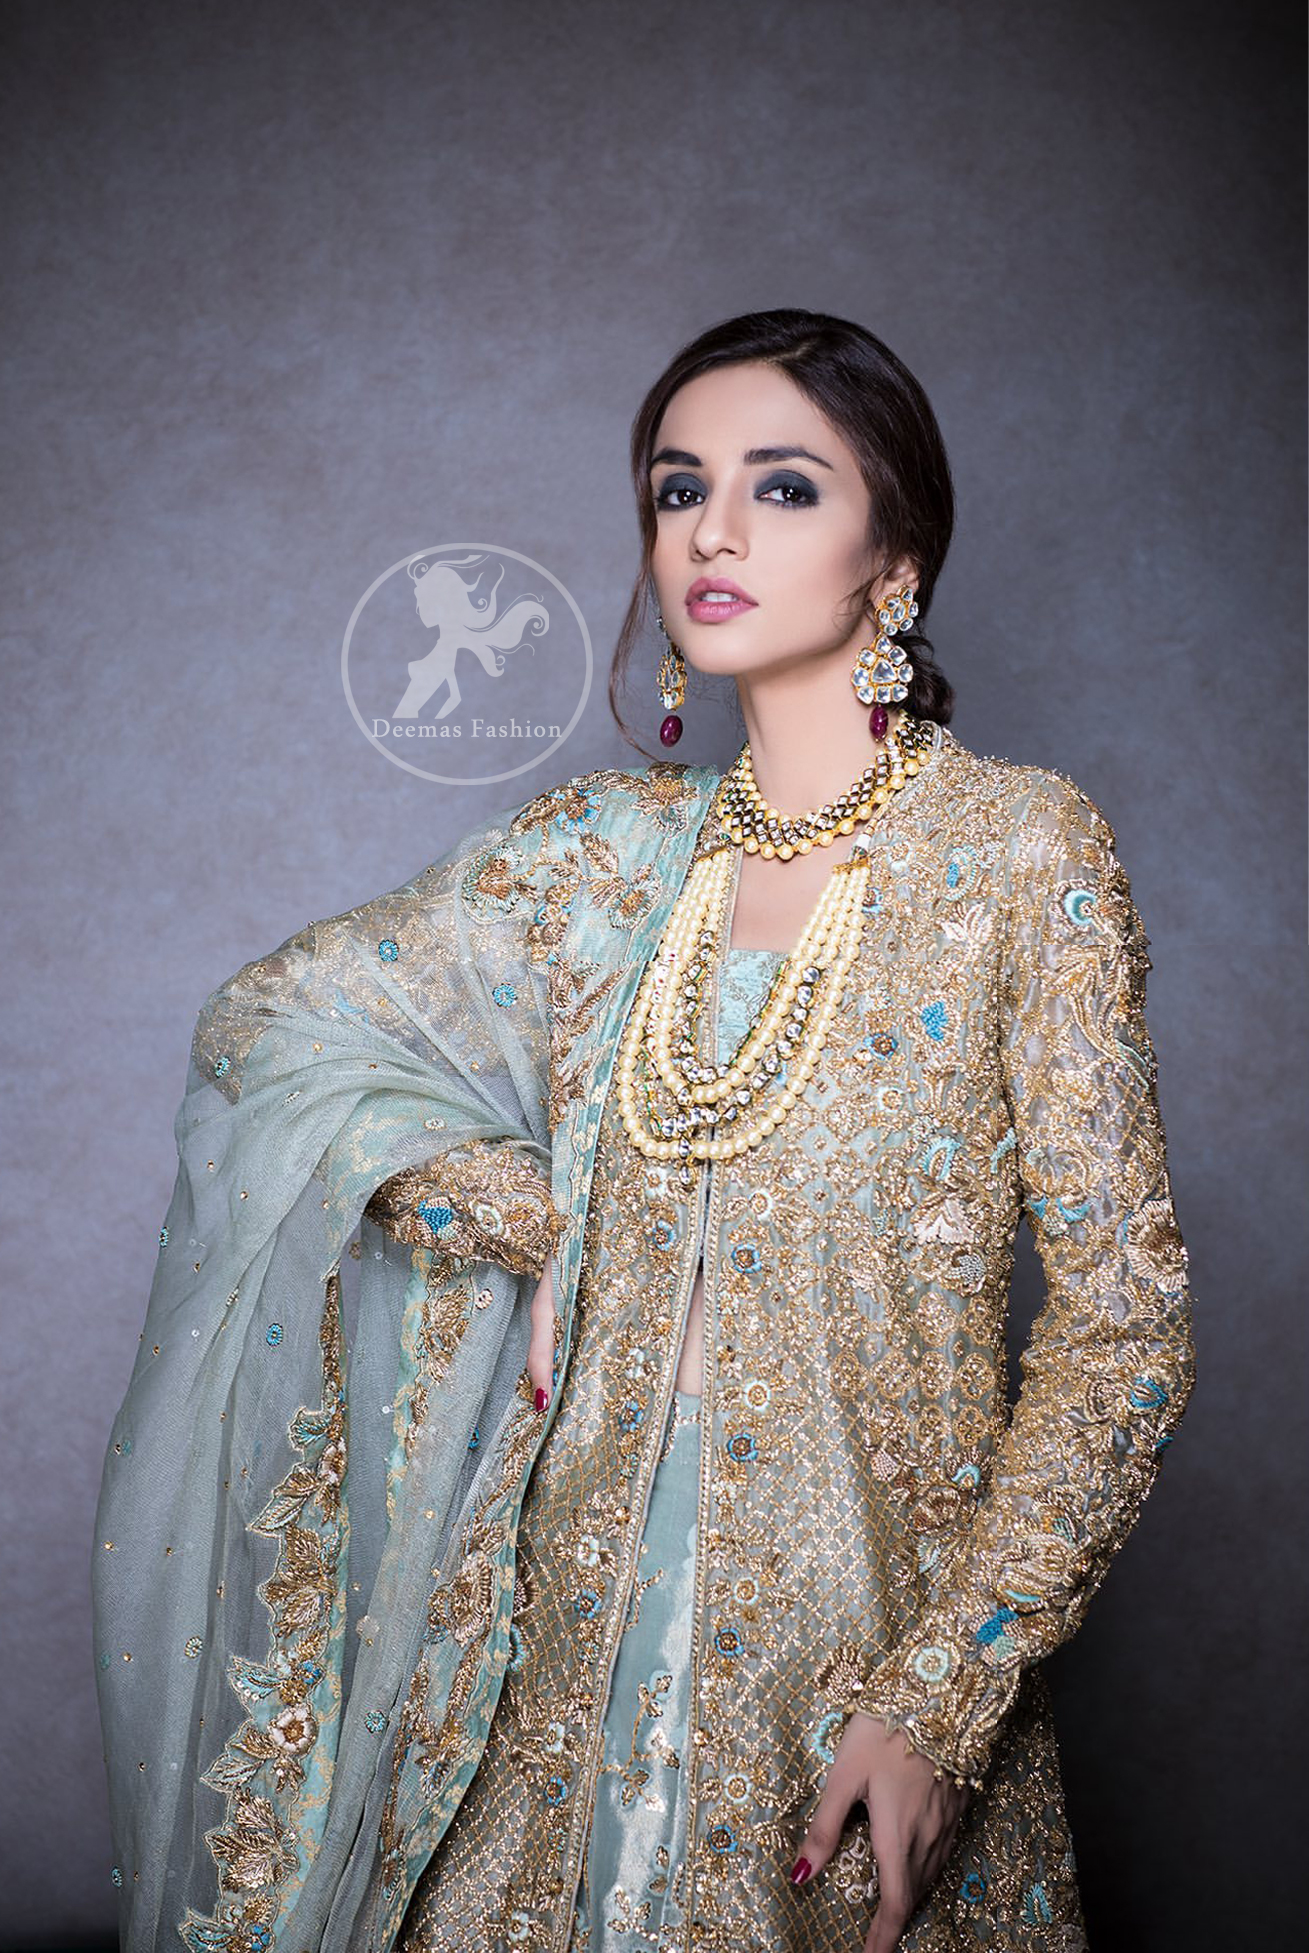 This regal regent gray outfit is an immensely captivating traditional piece, enhancing the art of classical heritage showcasing the craftsmanship of kora, dabka & mukesh detailed with pearls; artistically embellished to give a beautiful rhythm to the outfit. Gown is heavily embellished with antique zardosi work and floral thread embroidery. It comes with embellished lehenga enhanced with embroidered applique on the bottom. It comes with organza dupatta with embellished scalloped border at all ends.